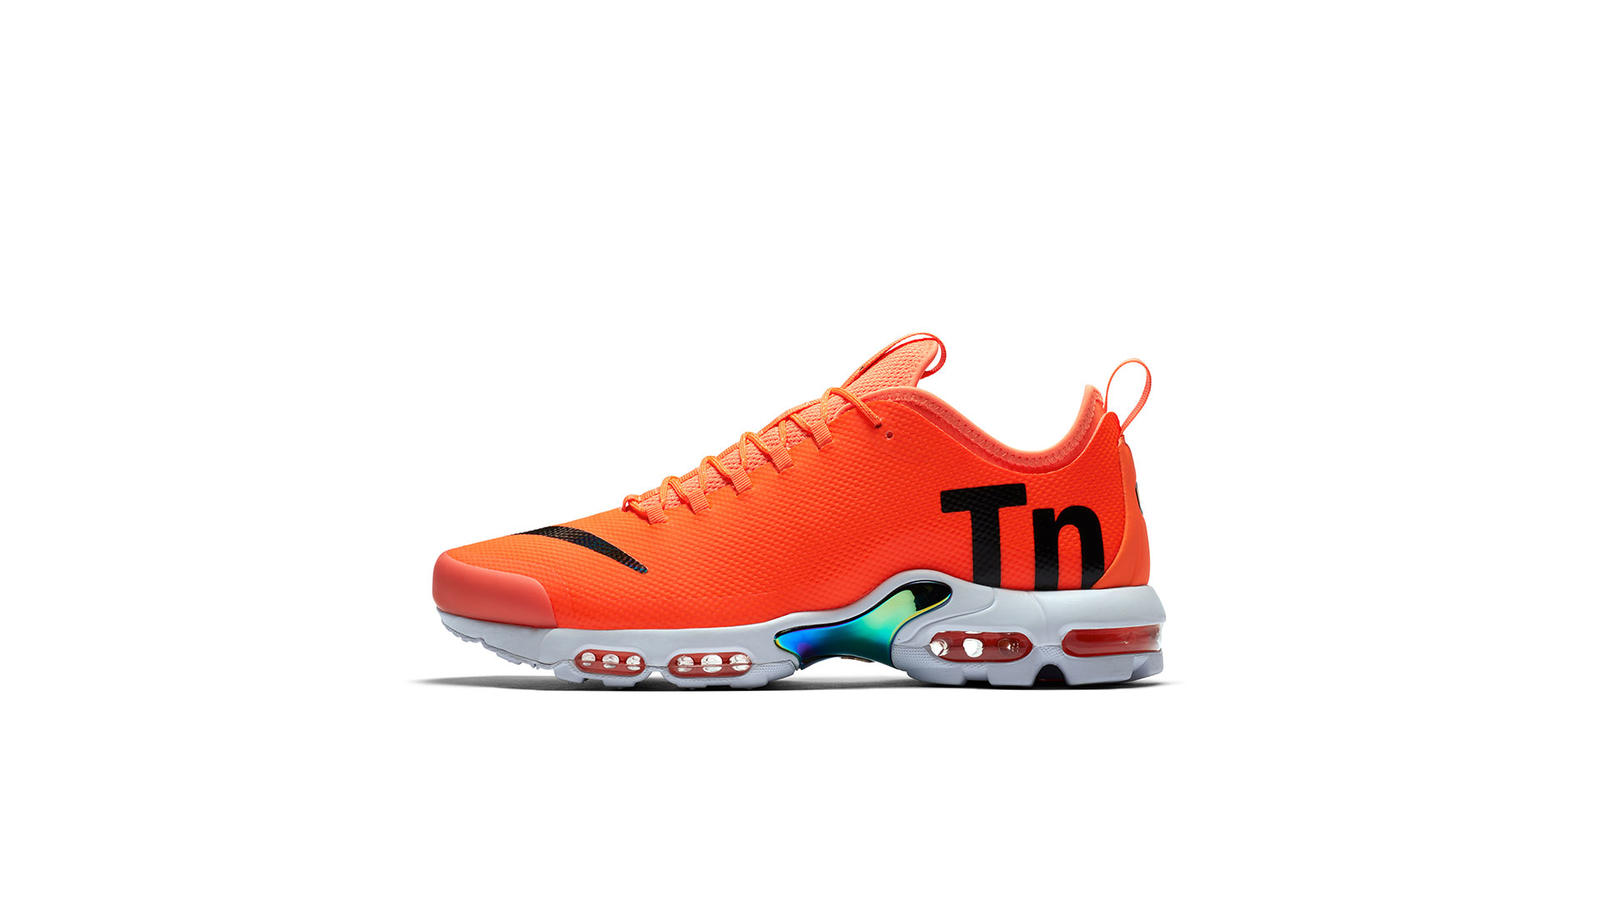 Nike Mercurial TN orange